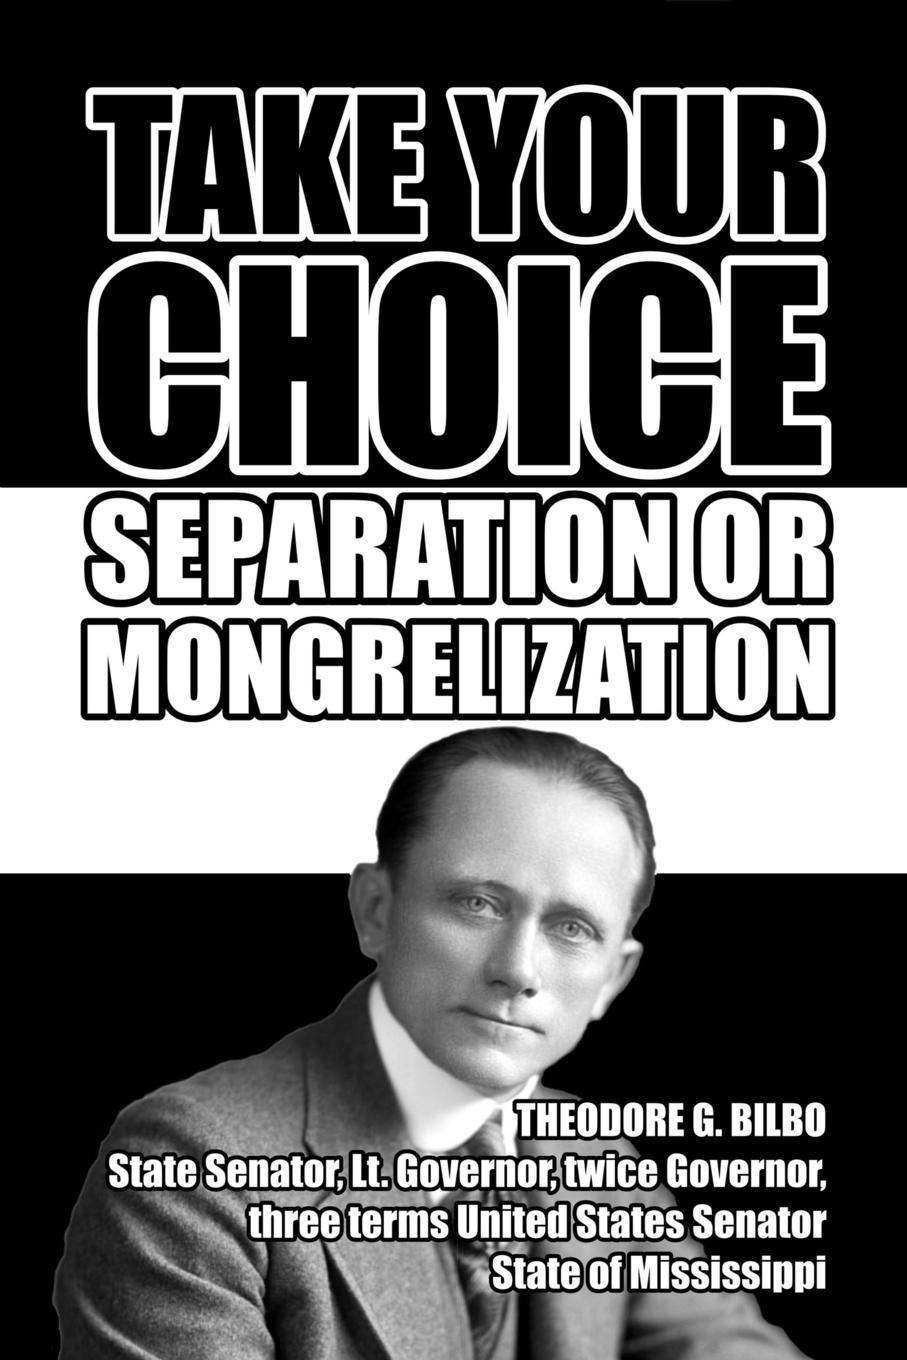 Theodore G. Bilbo Take Your Choice. Separation or Mongrelization